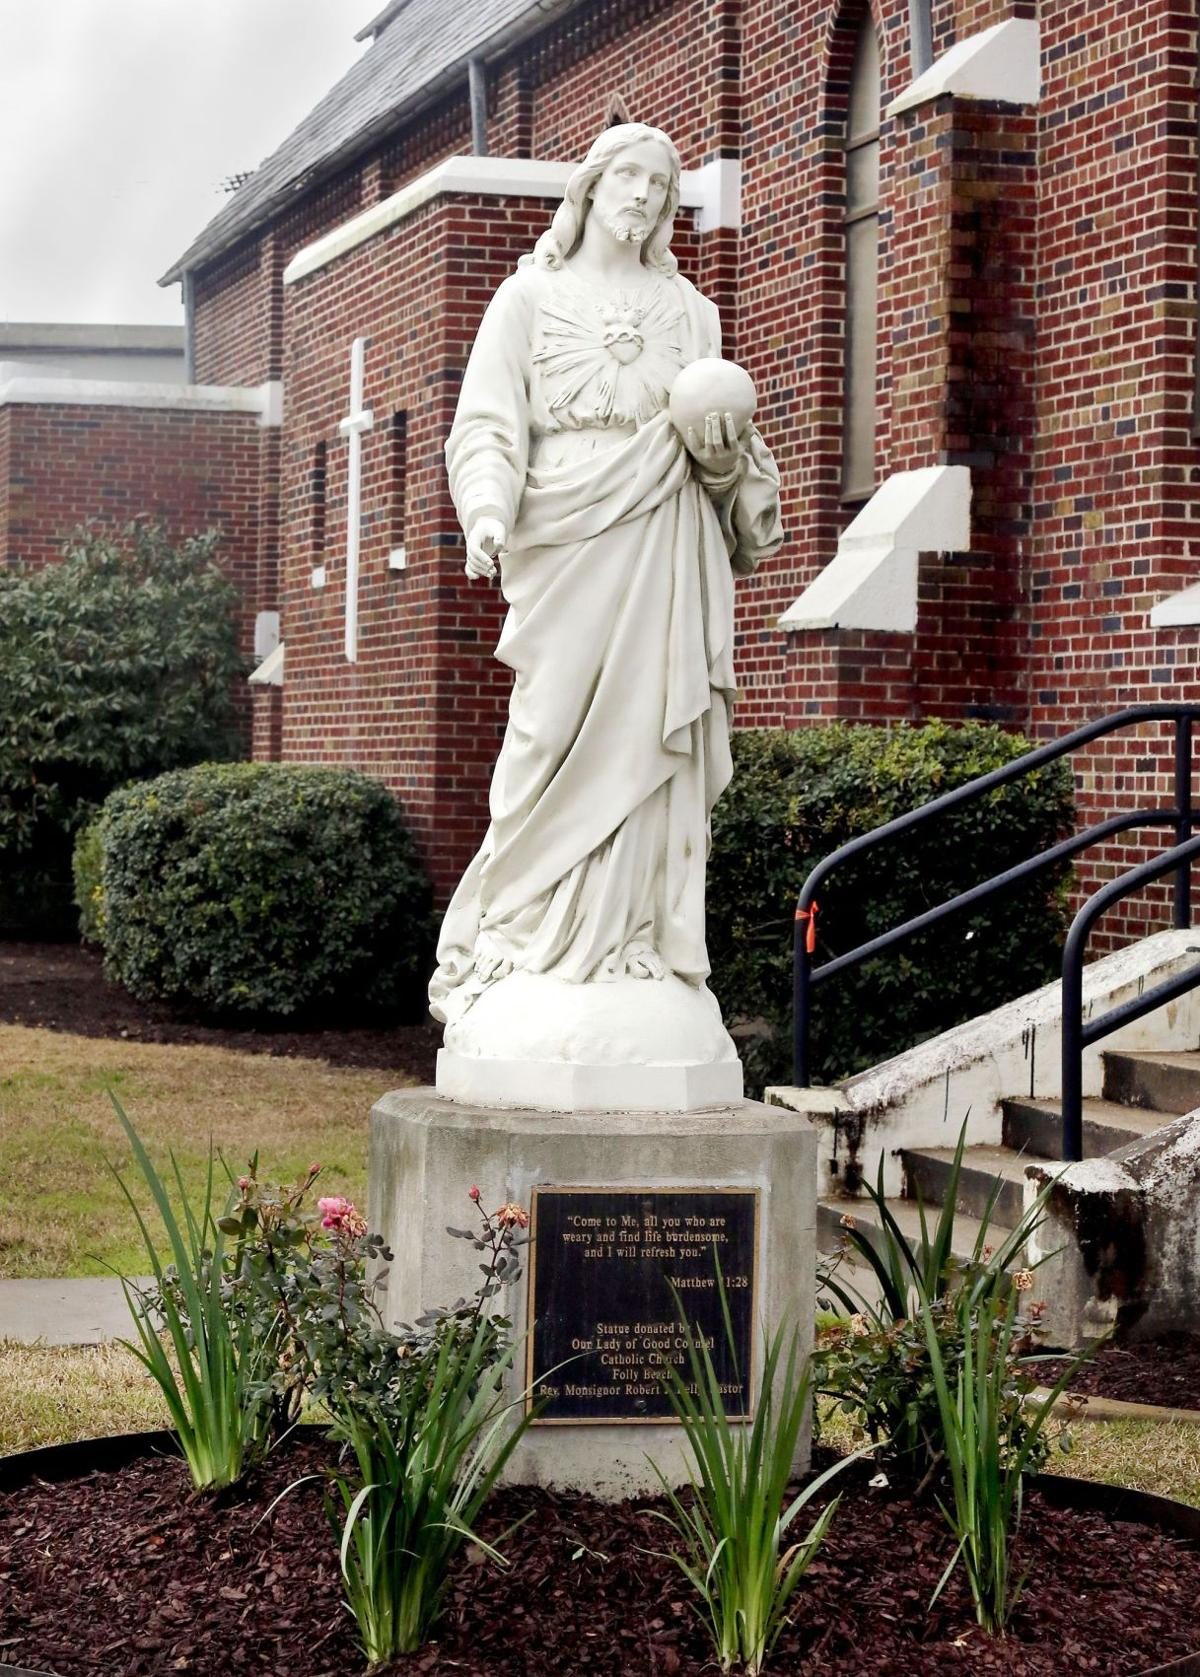 Statue of Jesus replaced by Catholic church thanks to help from Citadel cadets replacing statue of Jesus